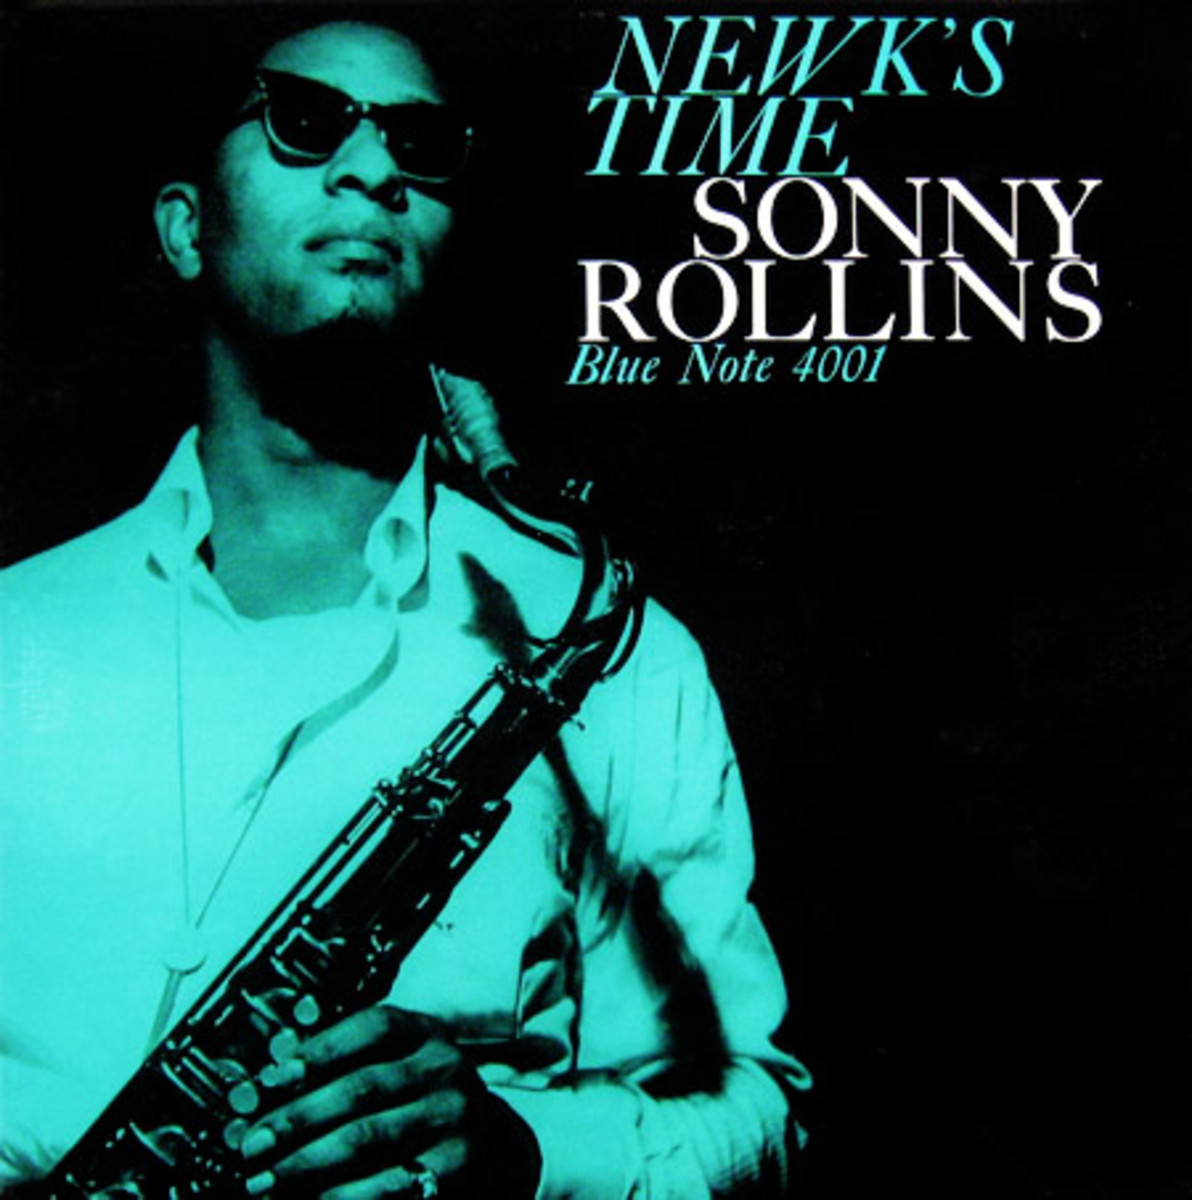 """Sonny Rollins """"Newk´s Time"""" Blue Note Records BLP 4001 12"""" LP Vinyl Record (1958) Album Cover Photo by Francis Wolff"""